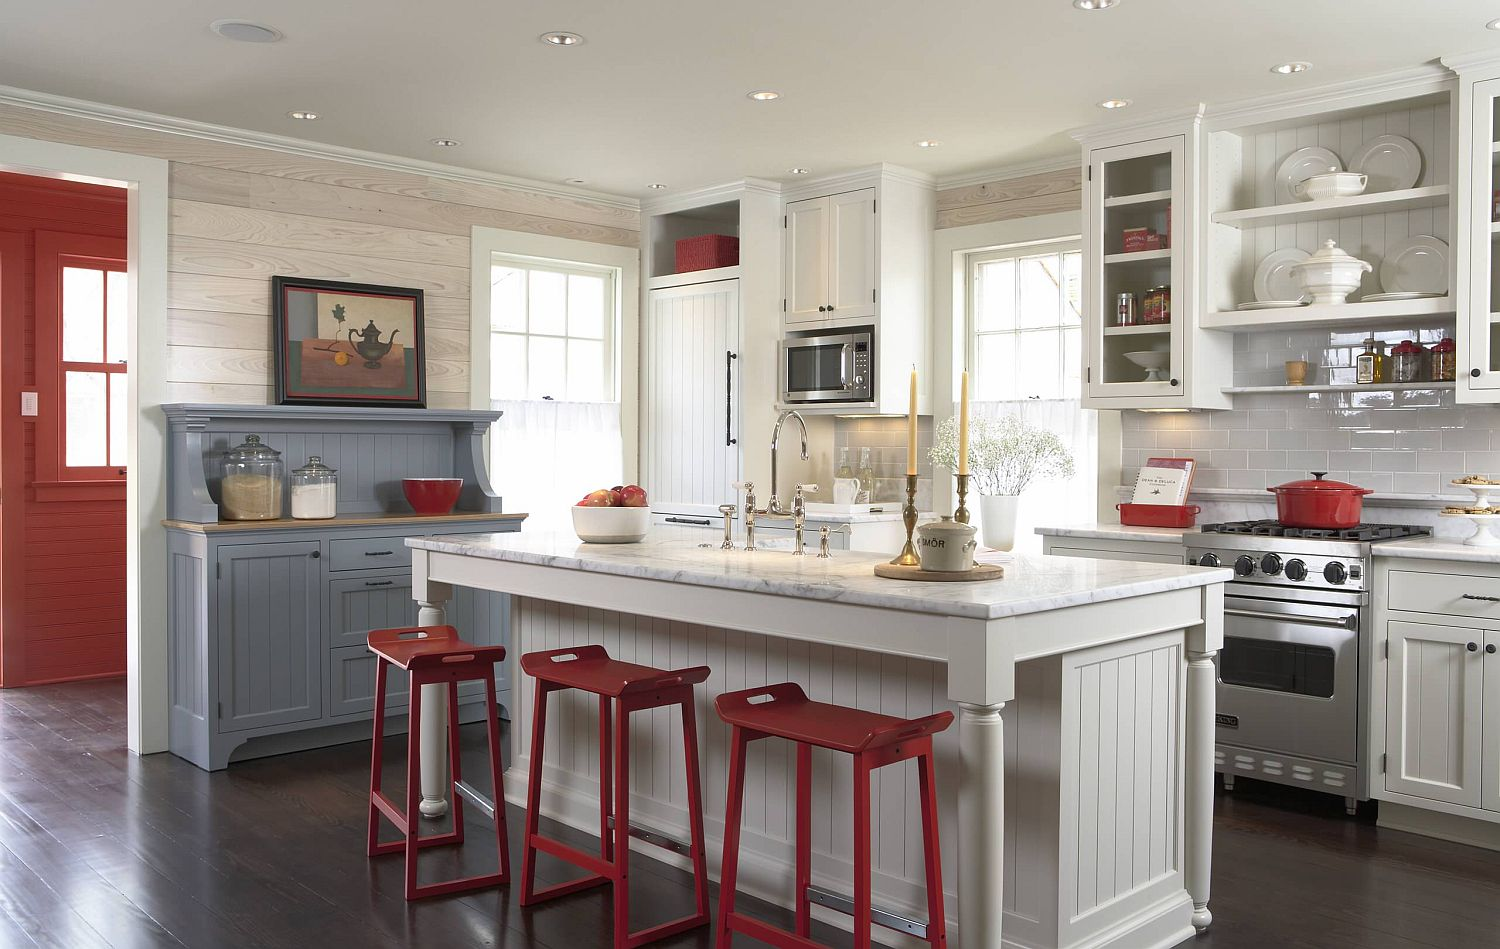 Pops of red enliven the traditional cottage style kitchen in white and gray